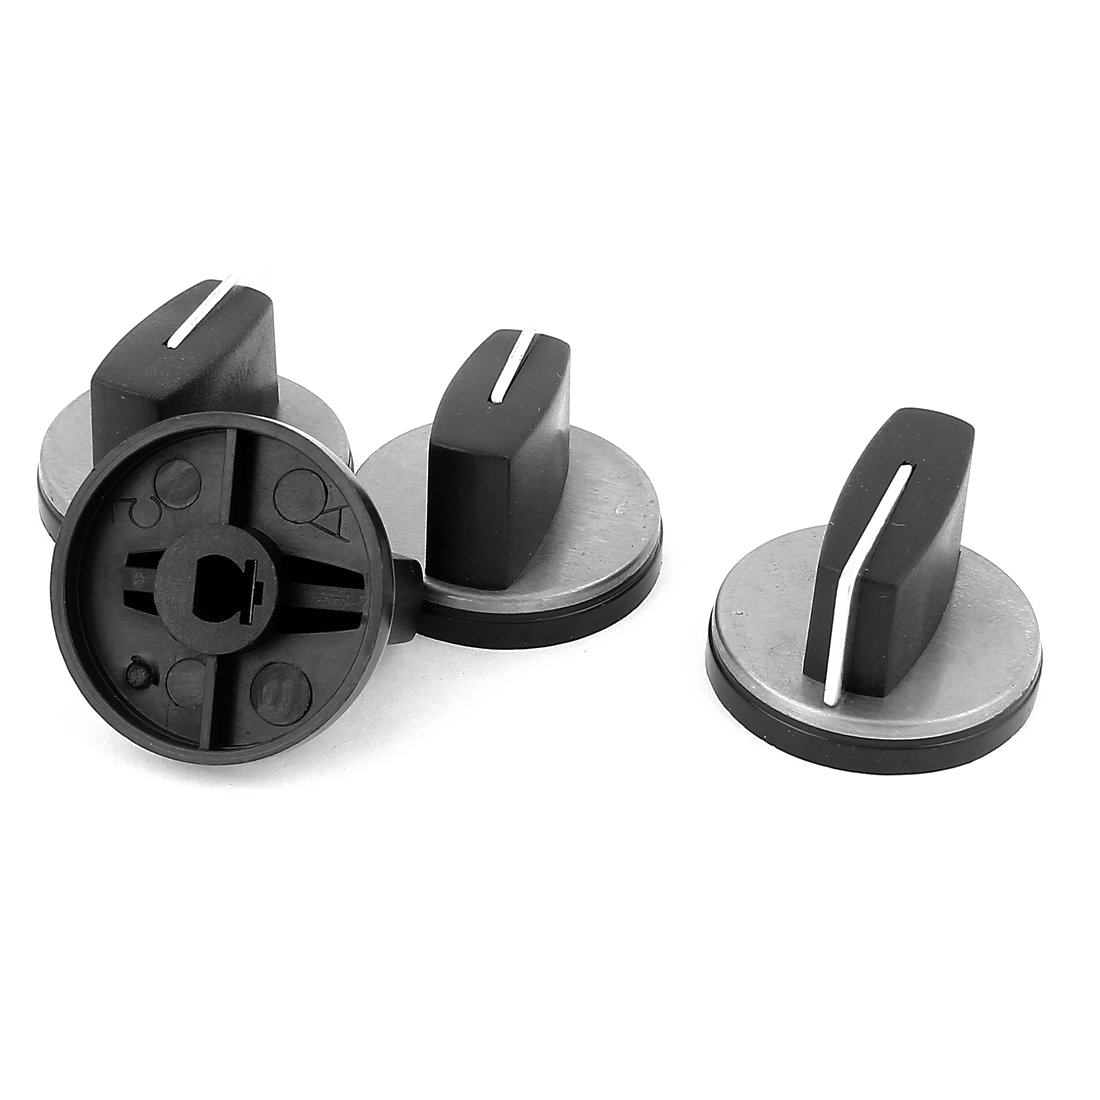 4 in 1 Embedded gas stove stove knob knob ignition cap ignition ...